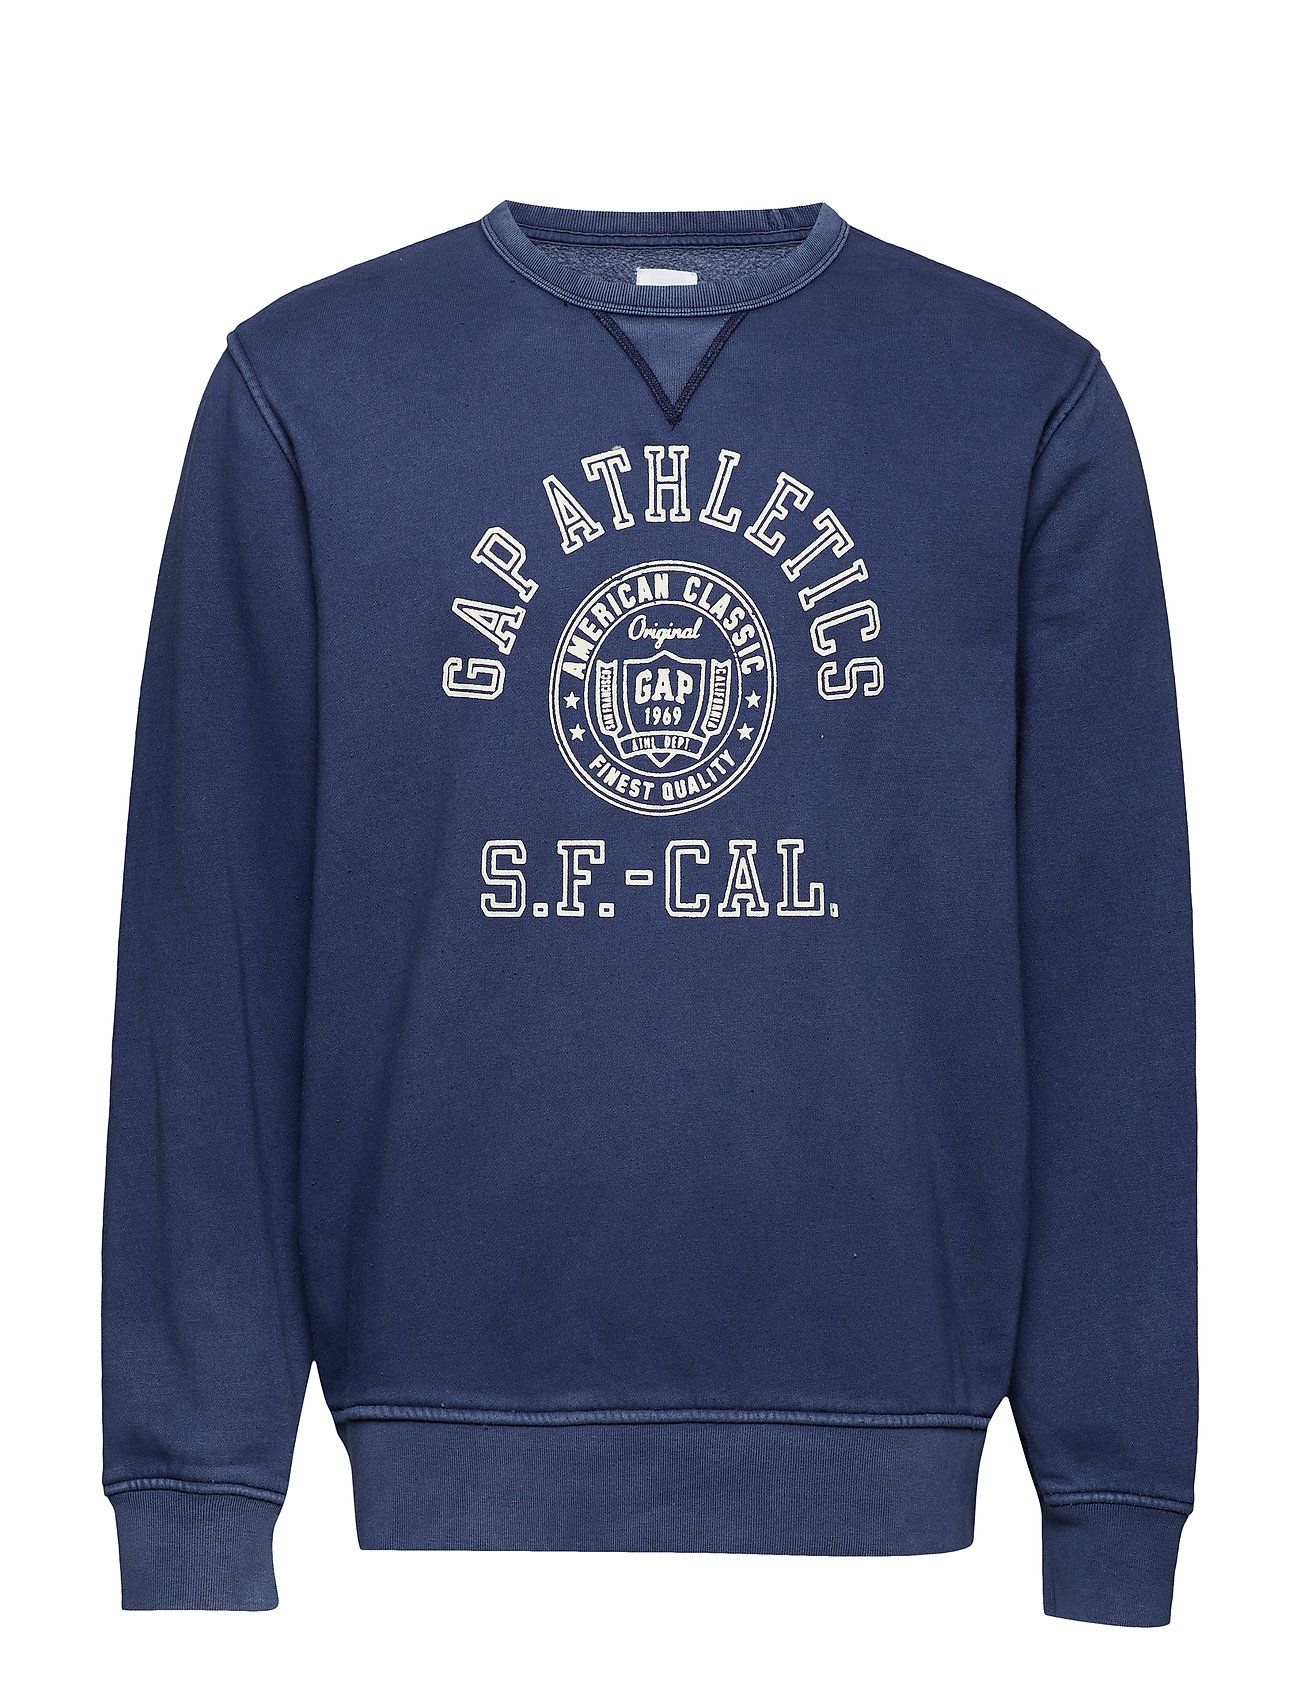 GAP Vintage Soft Gap Logo Graphic Sweatshirt - MARINE BLUE 059